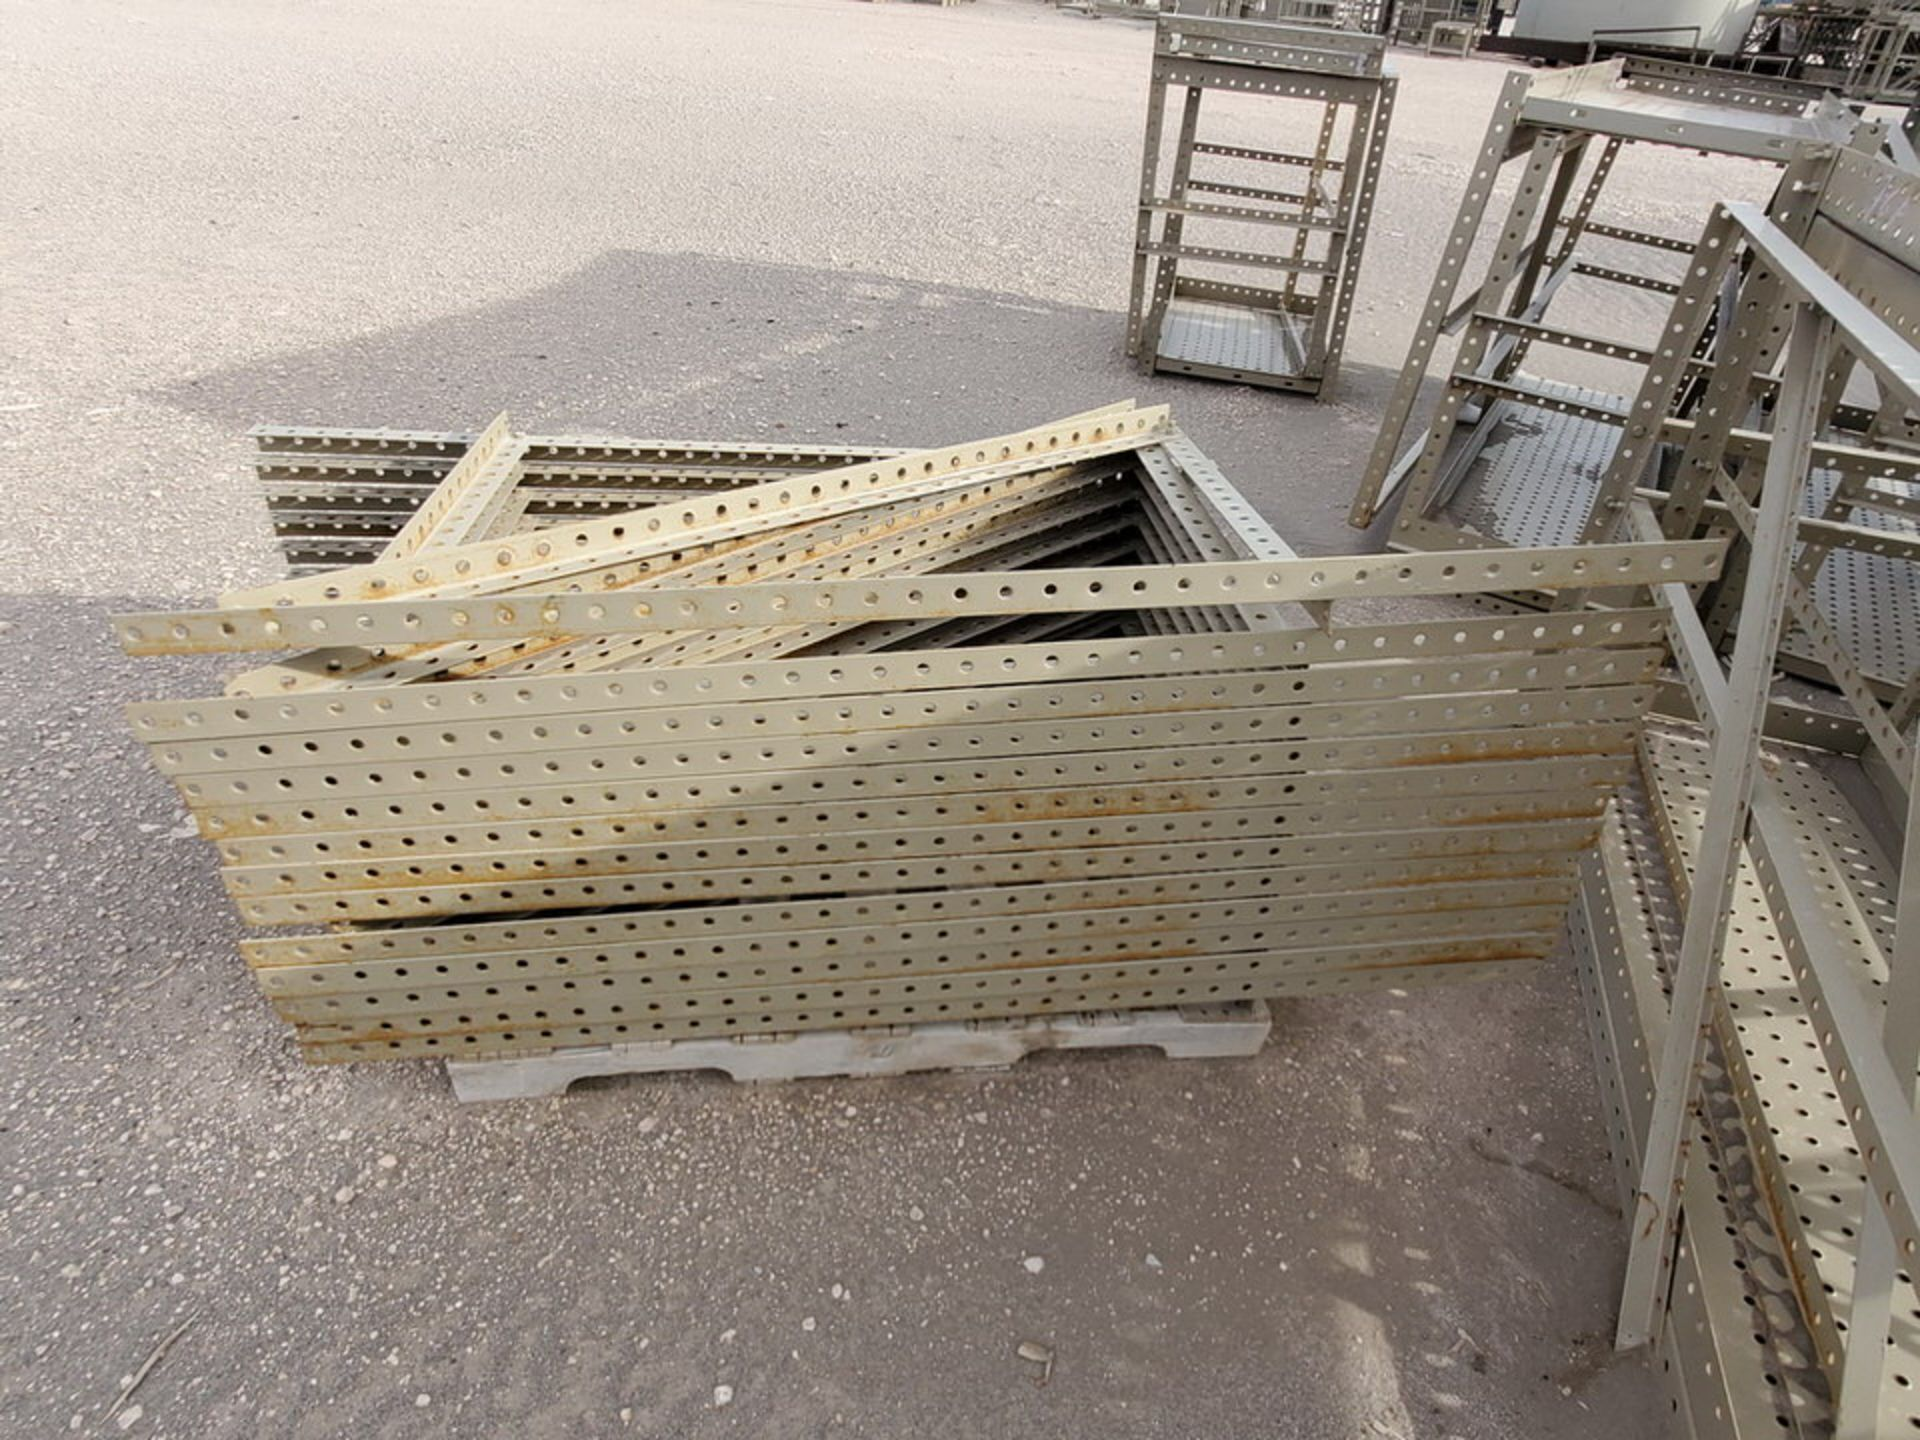 Disassembled Catwalk Sections - Image 18 of 20